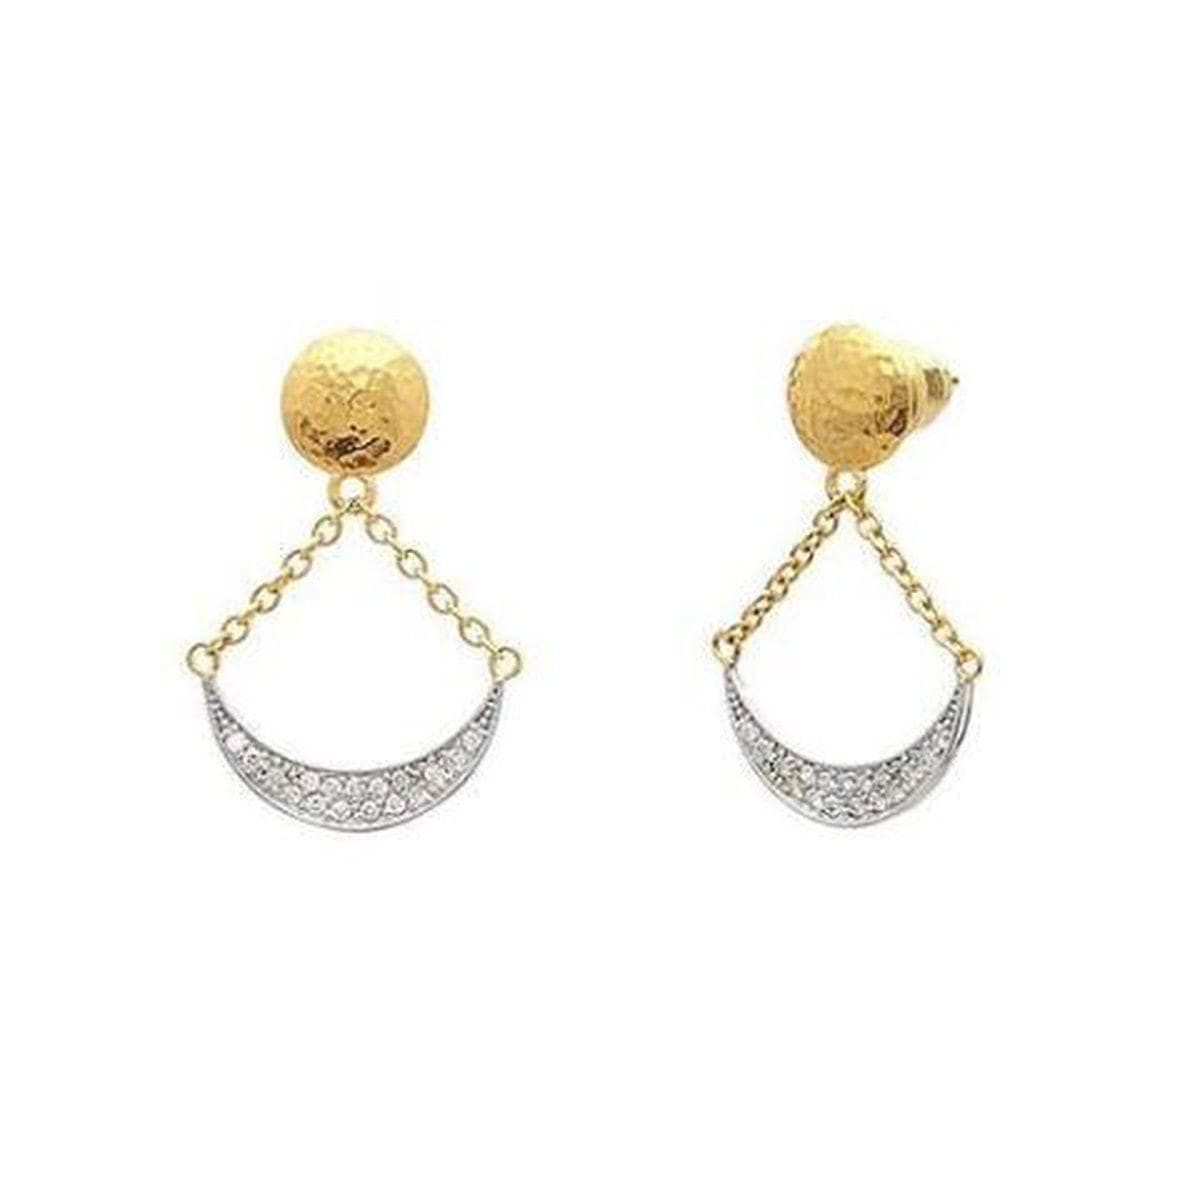 Mango 22K Gold White Diamond Earrings - LTE-LSPV-NFL-DI-GURHAN-Renee Taylor Gallery